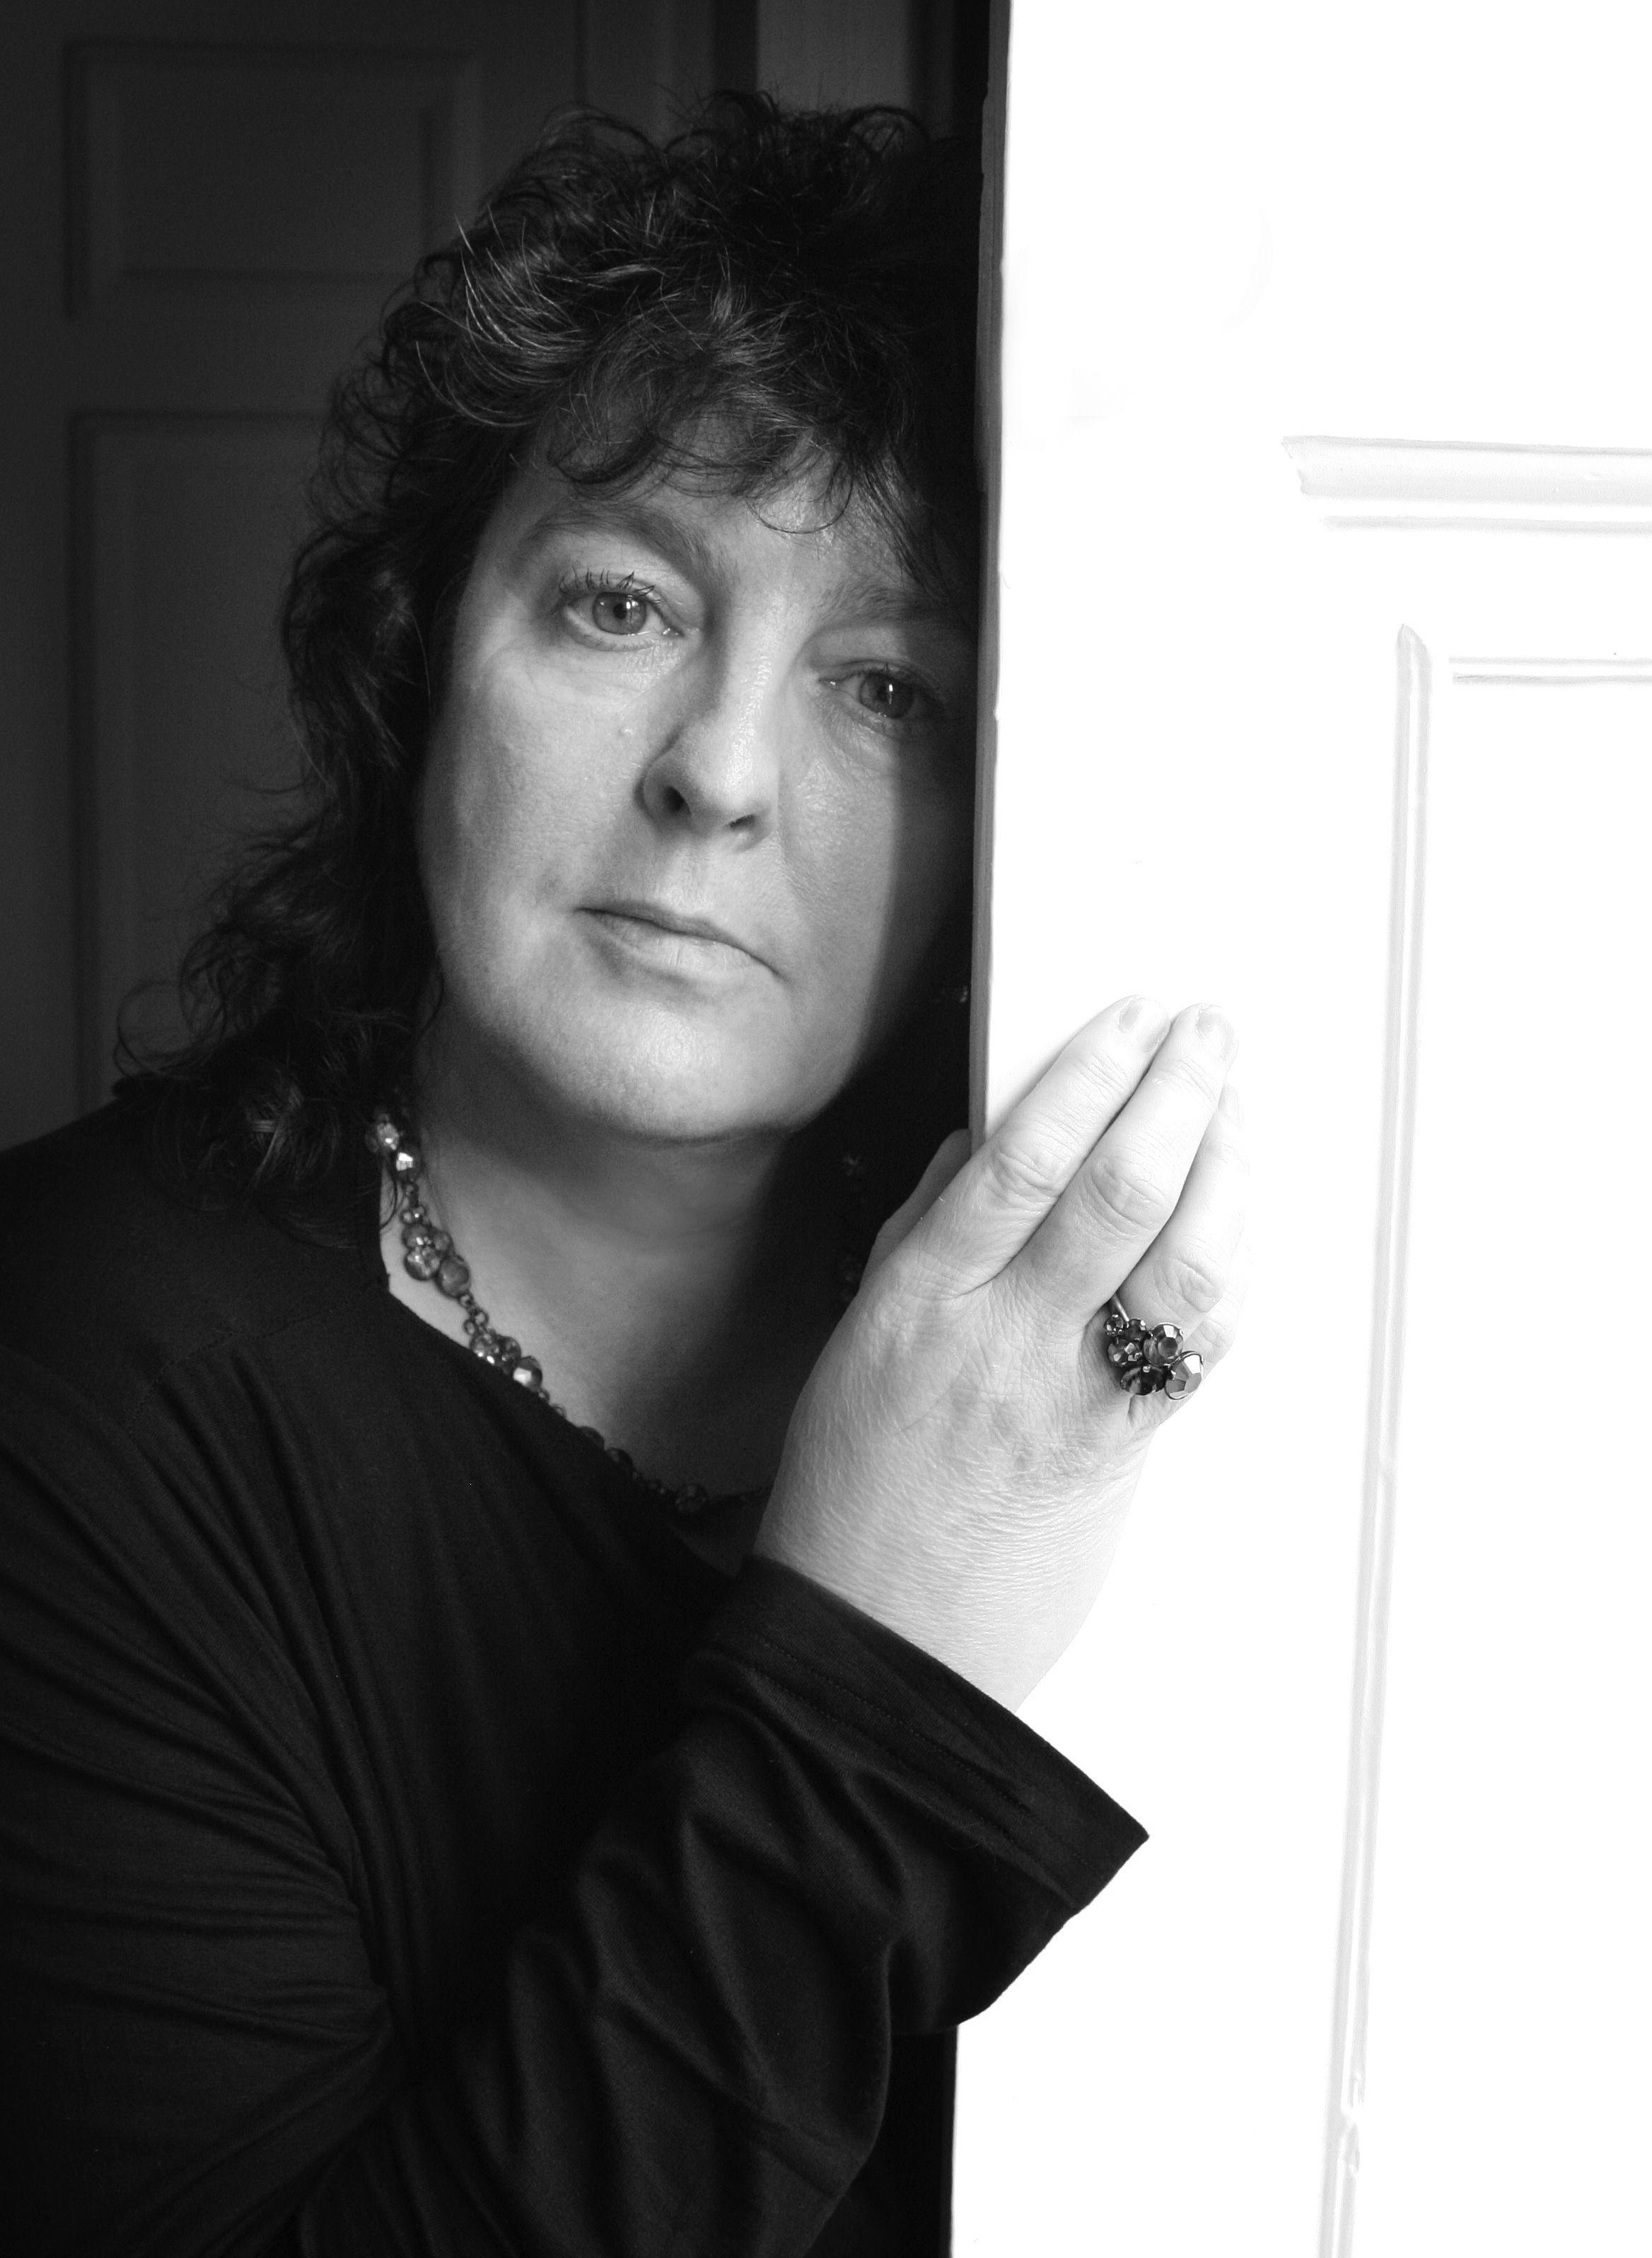 """carol ann duffy litany Carol ann duffy - notes on five poems 1 carol ann duffy –an analysis of key themes from five poems 2 childhoodnotes from """"originally""""repeatedly returns to the metaphor of childhood as a """"country"""" – echoes oflp hartley's """"the past is a foreign country they do things differentlythere."""